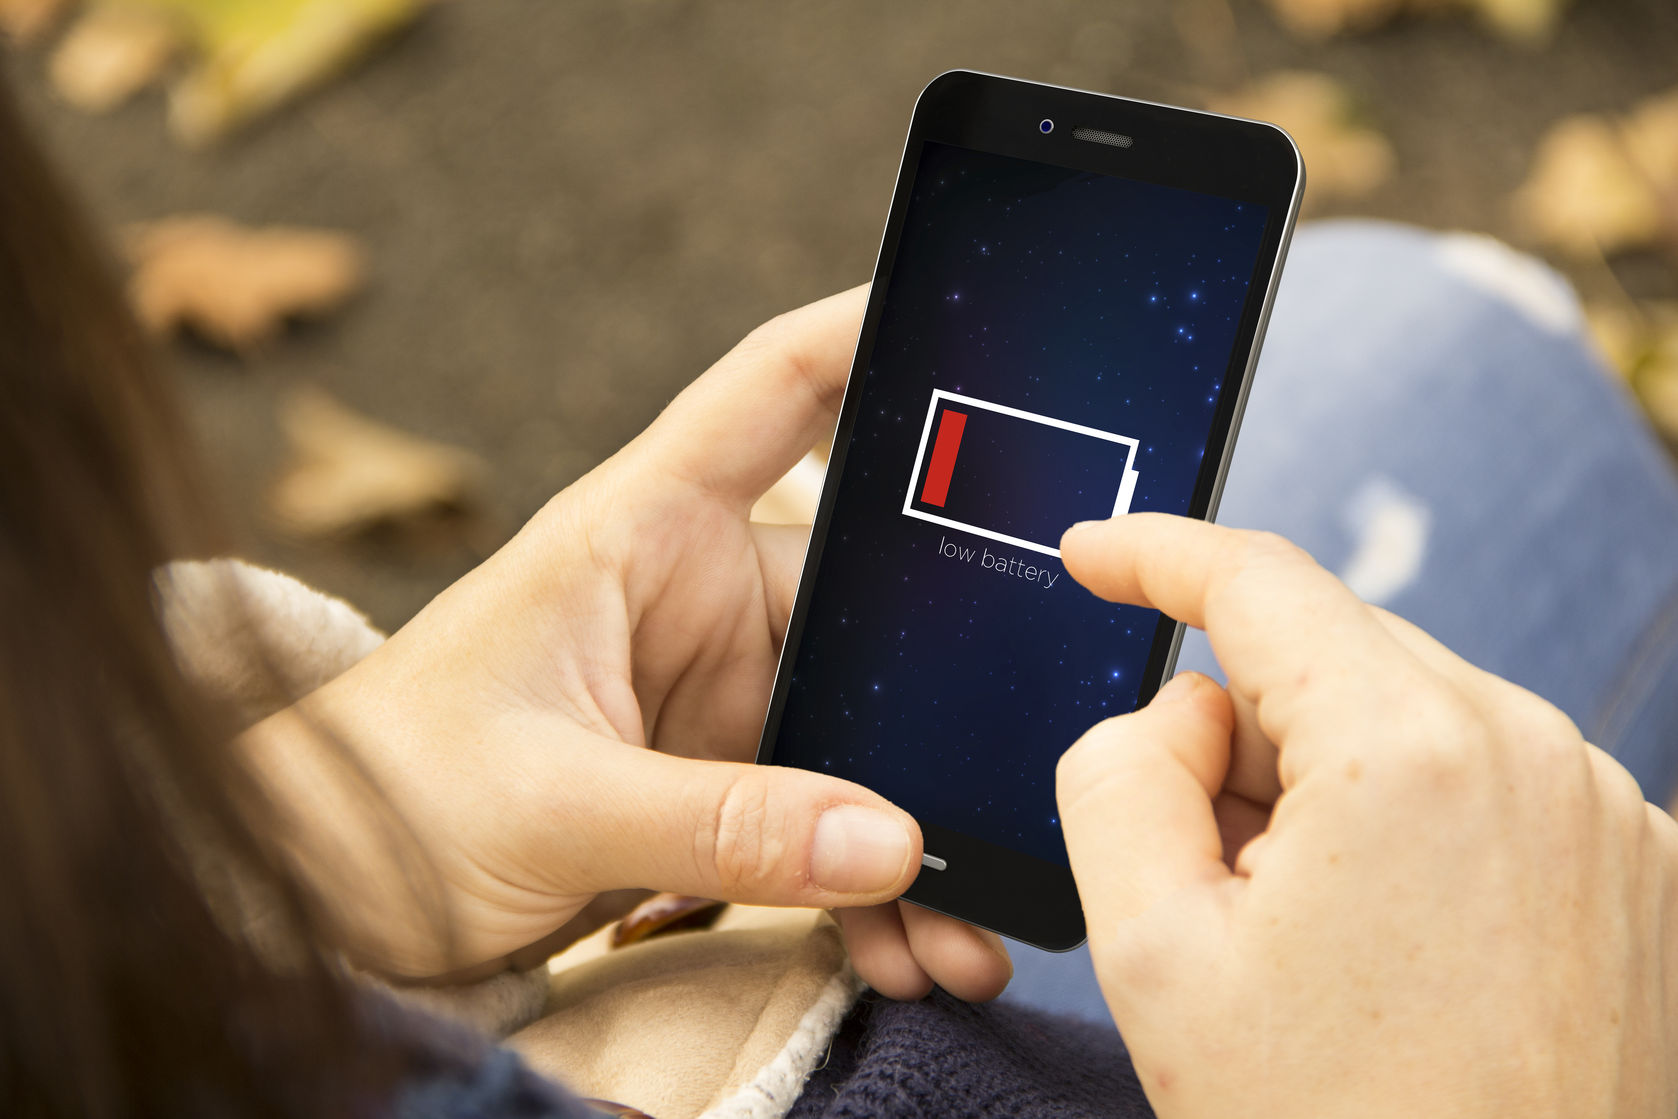 How to Make our Smartphone Battery Last Longer